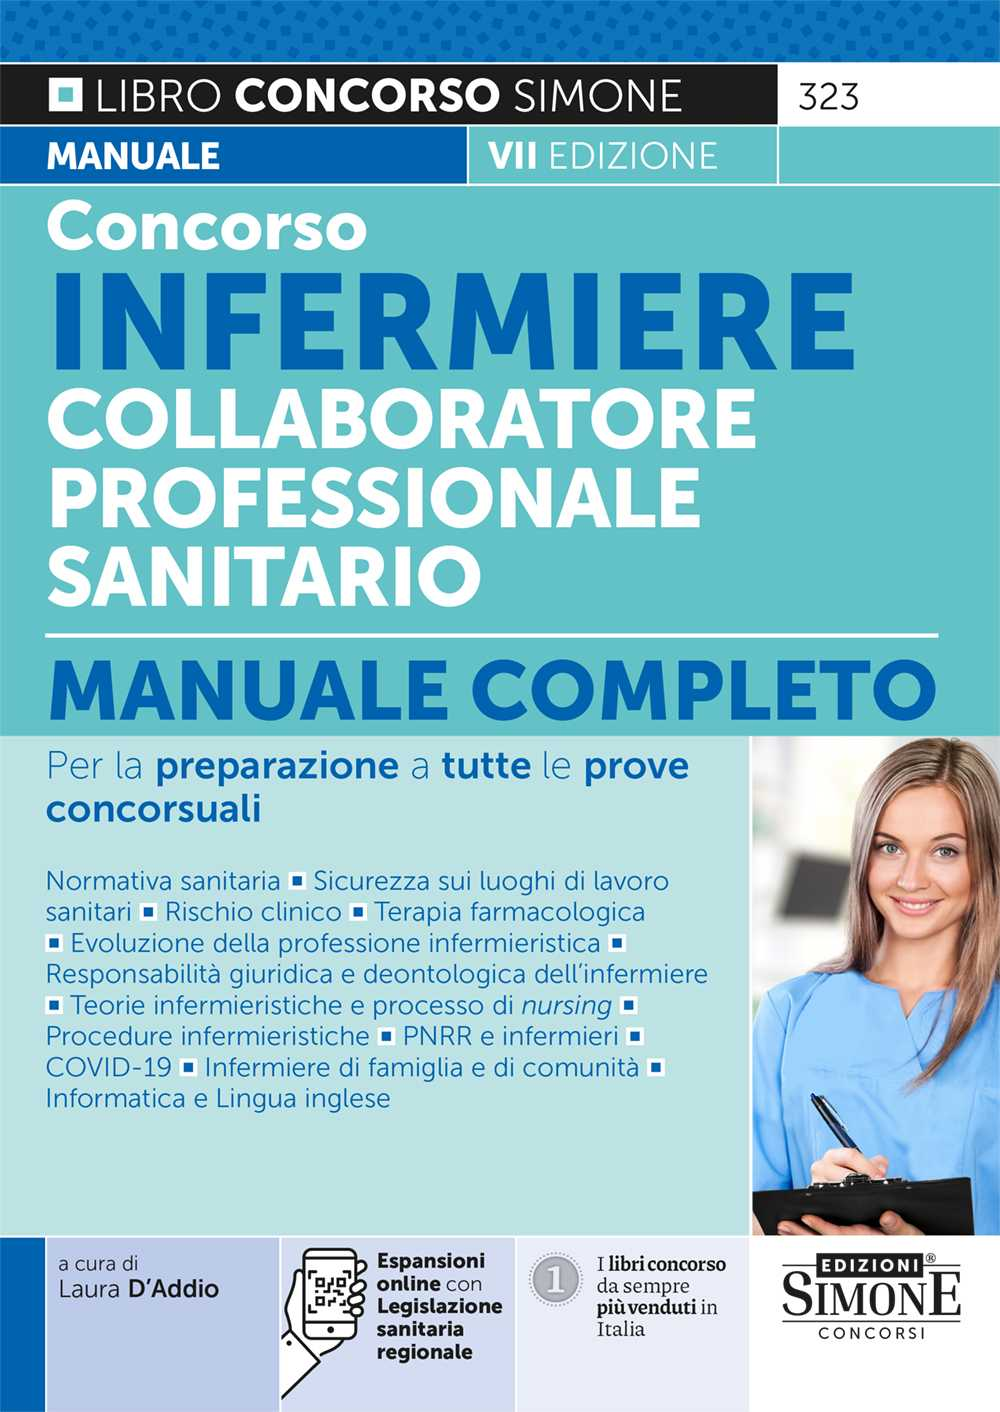 Collaboratore Professionale Sanitario Infermiere - Manuale